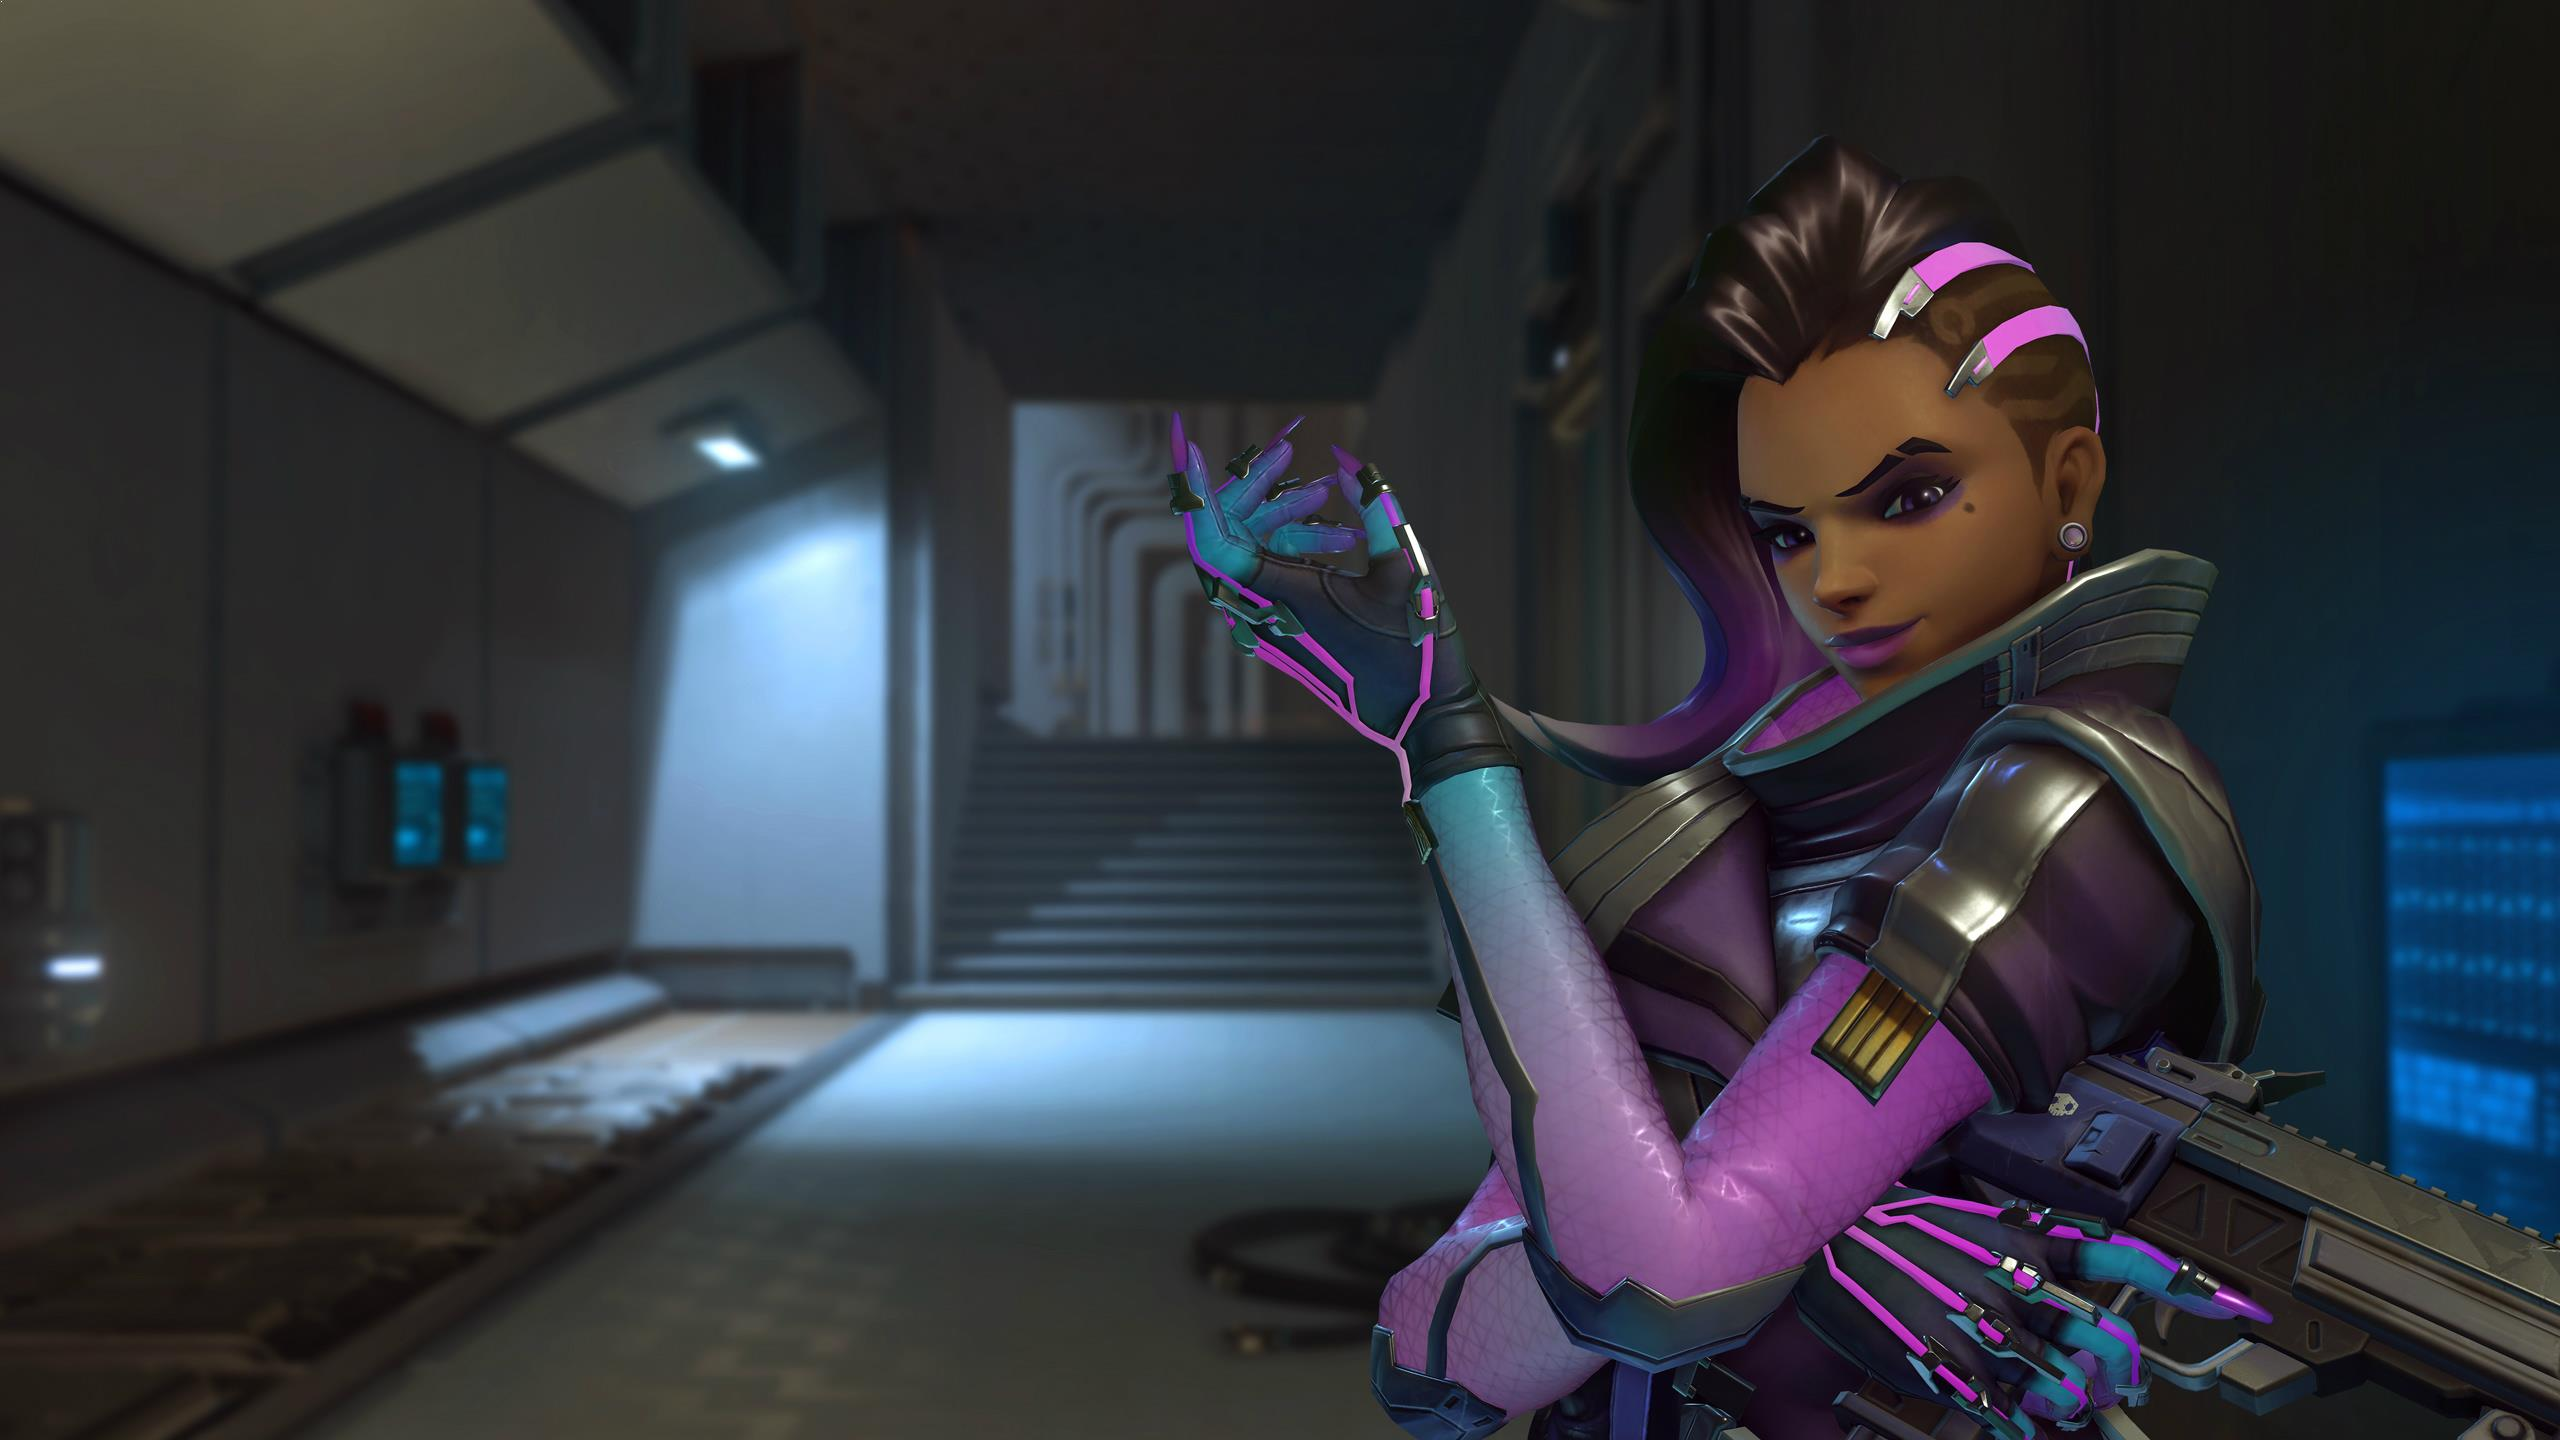 Blizzard reveals Sombra after a long wait